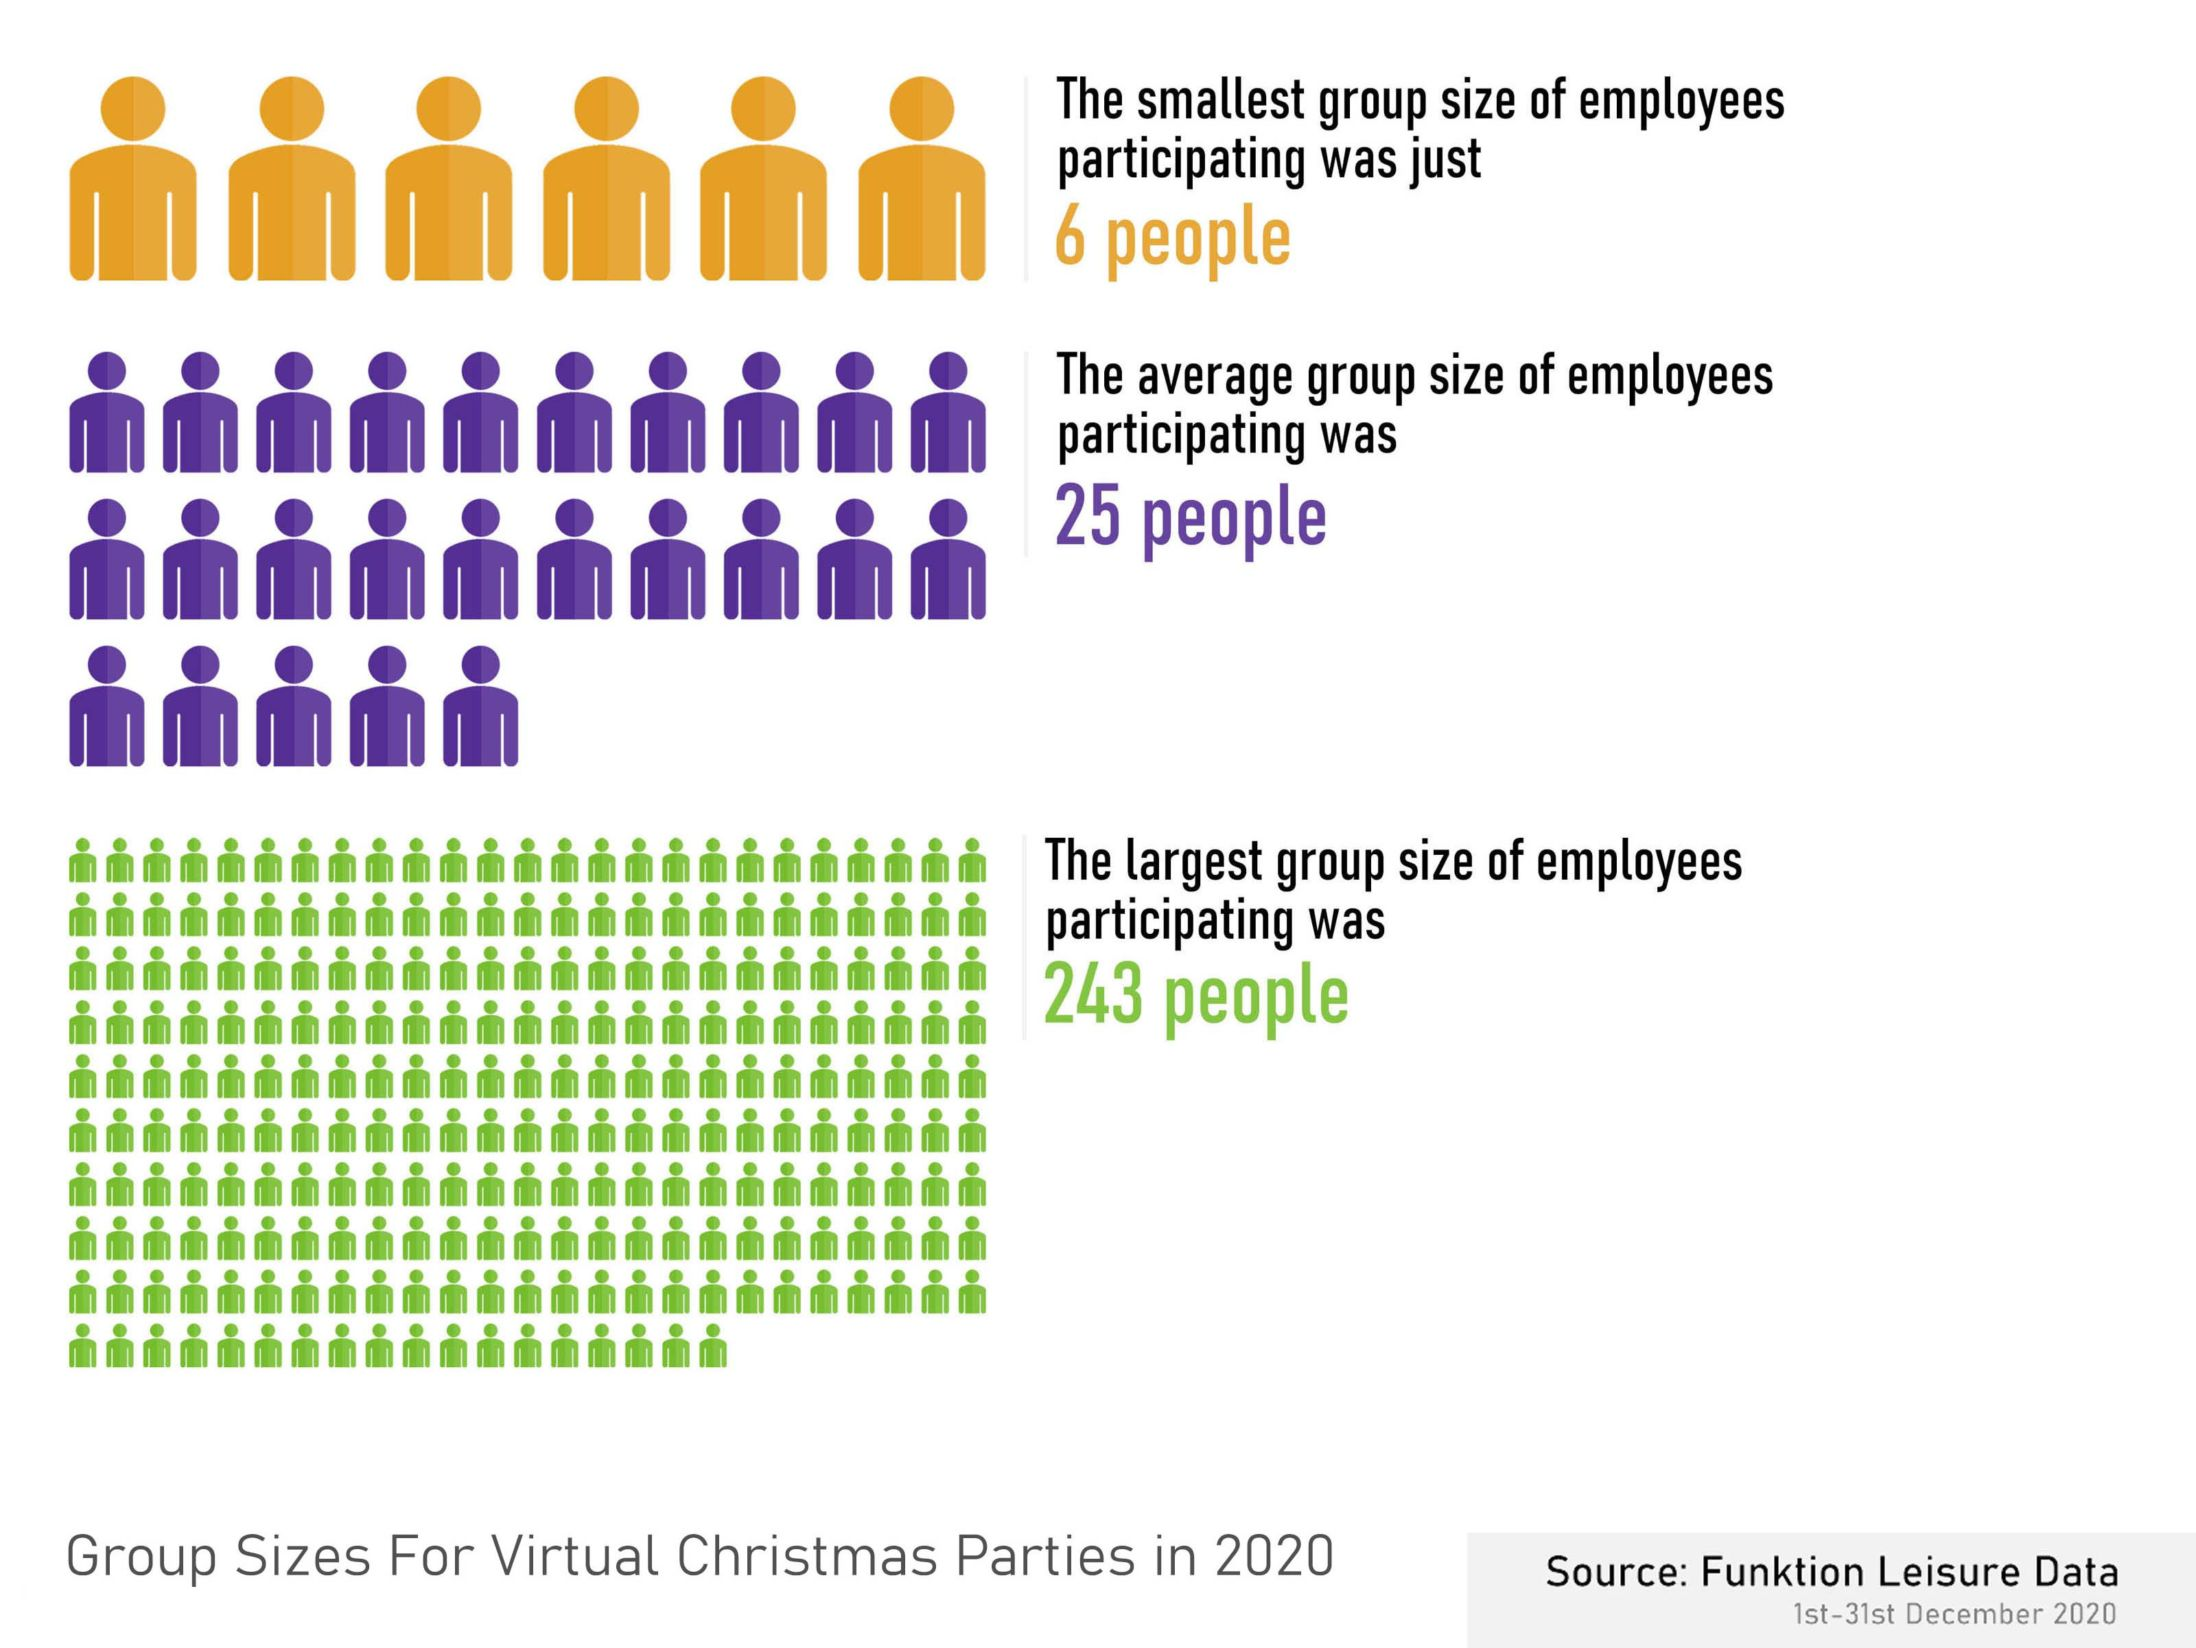 Group Sizes for Virtual Christmas Parties in 2020